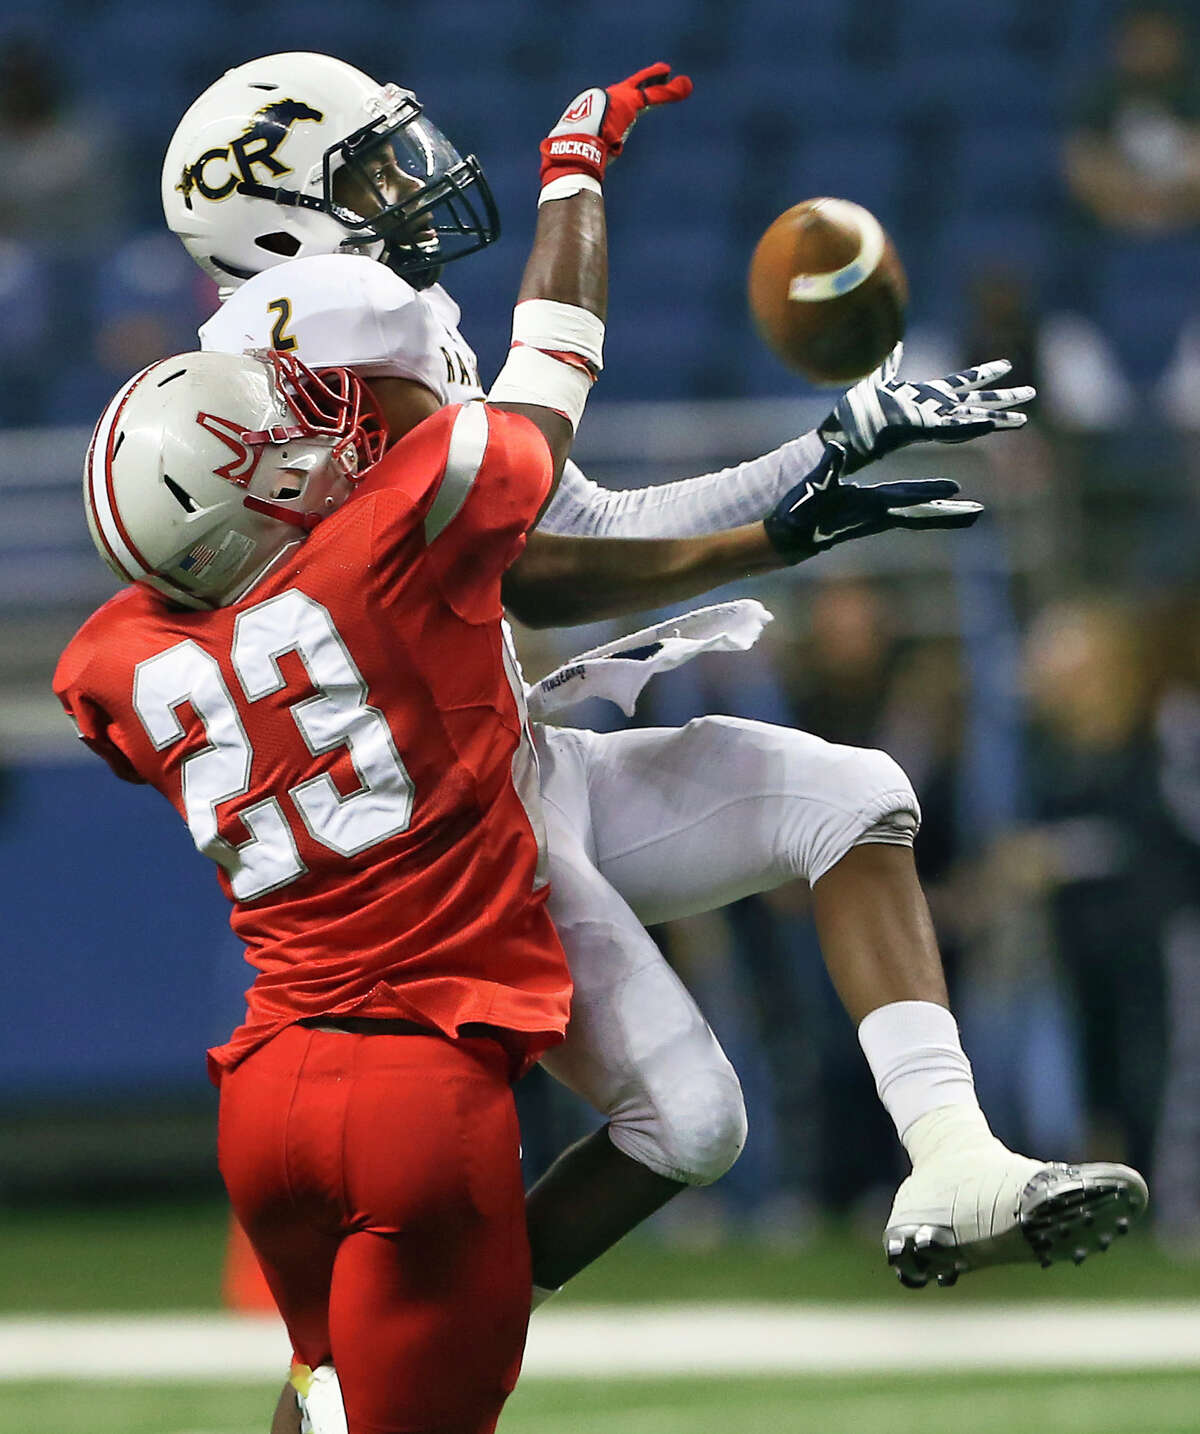 Intriguing match-ups abound this week, but none may be bigger than the one between Katy and Cypress Ranch in the Class 6A Division II bracket. They meet at 7 p.m. Friday at Tully. Both teams played in state championship games last season and have realistic hopes of going far again this season. Cy Ranch (10-1) has won 10 in a row with only one of those victories coming by single digits. The Mustangs once again have a dominant running game led by quarterback Collin Rock, an SMU verbal pledge. But even the best offenses have fallen victim to Katy's powerful defense. The Tigers (11-0) have given up 18 points all season. They have shutout their last five opponents.